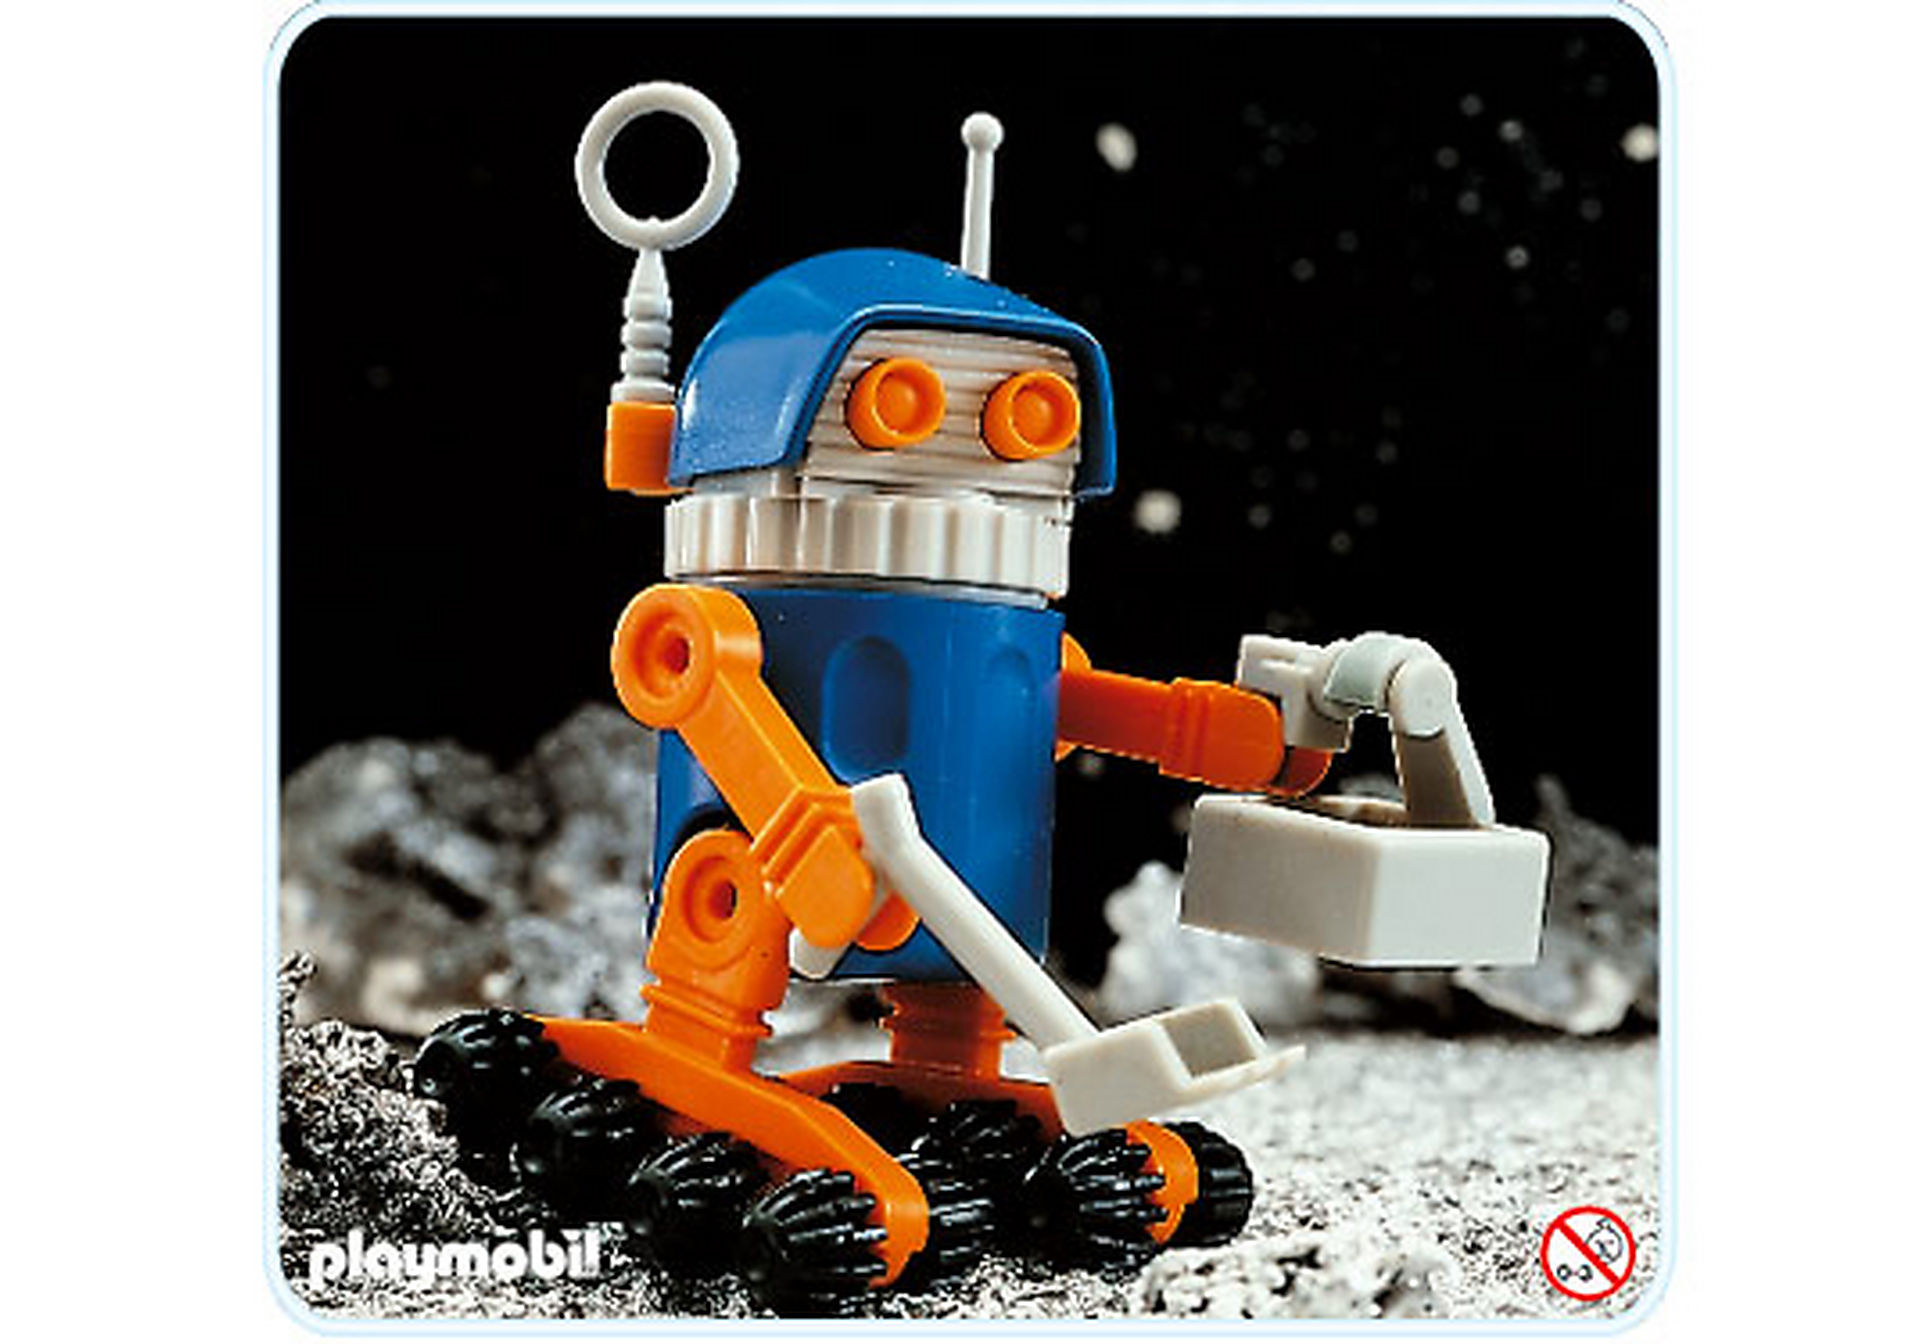 http://media.playmobil.com/i/playmobil/3318-A_product_detail/Roboter